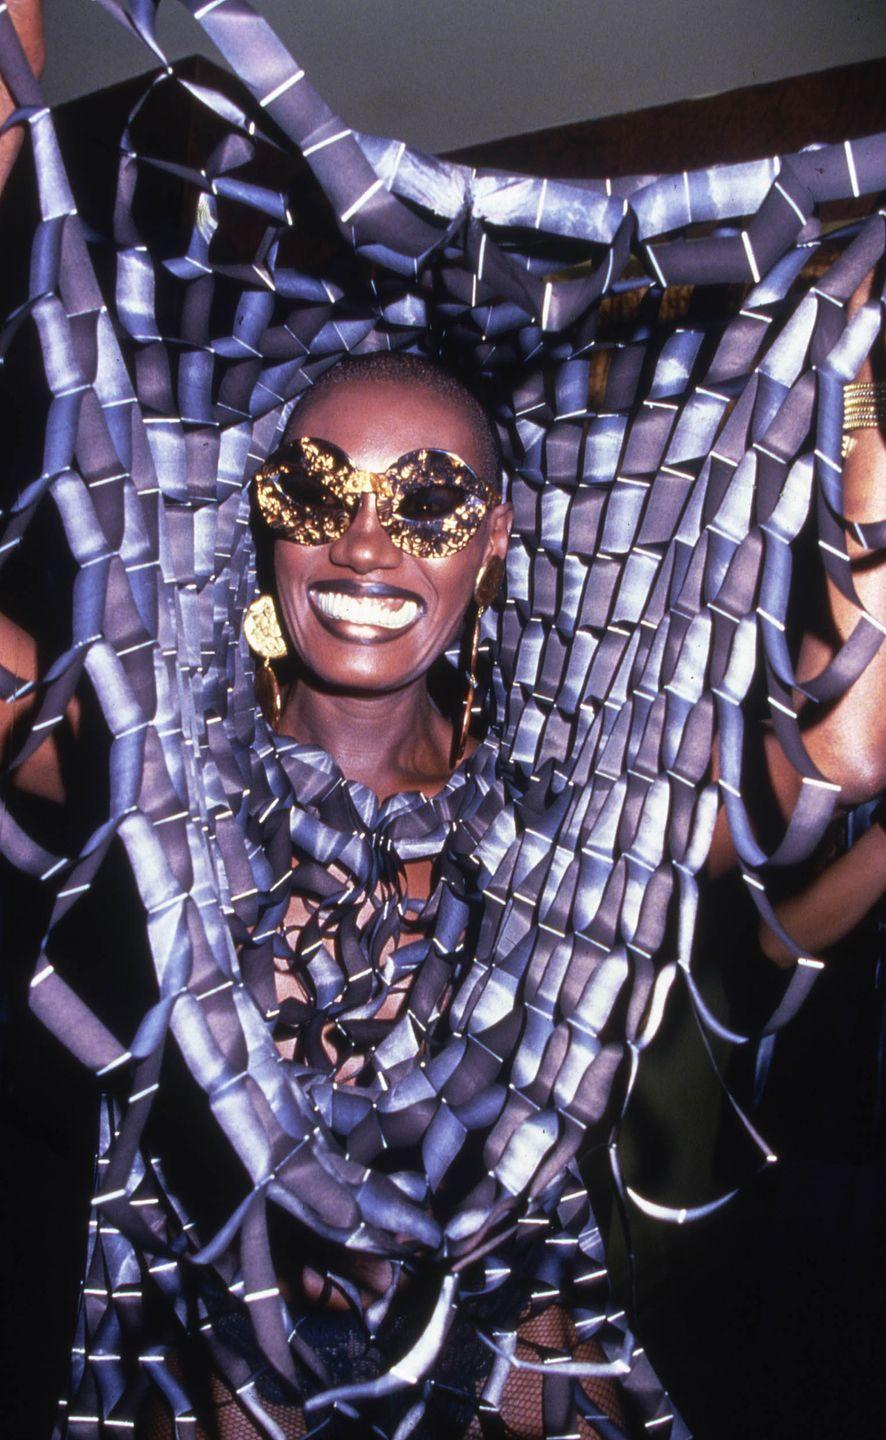 <p>Grace Jones smiles while partying at Studio 54 in New York, 1978.</p>